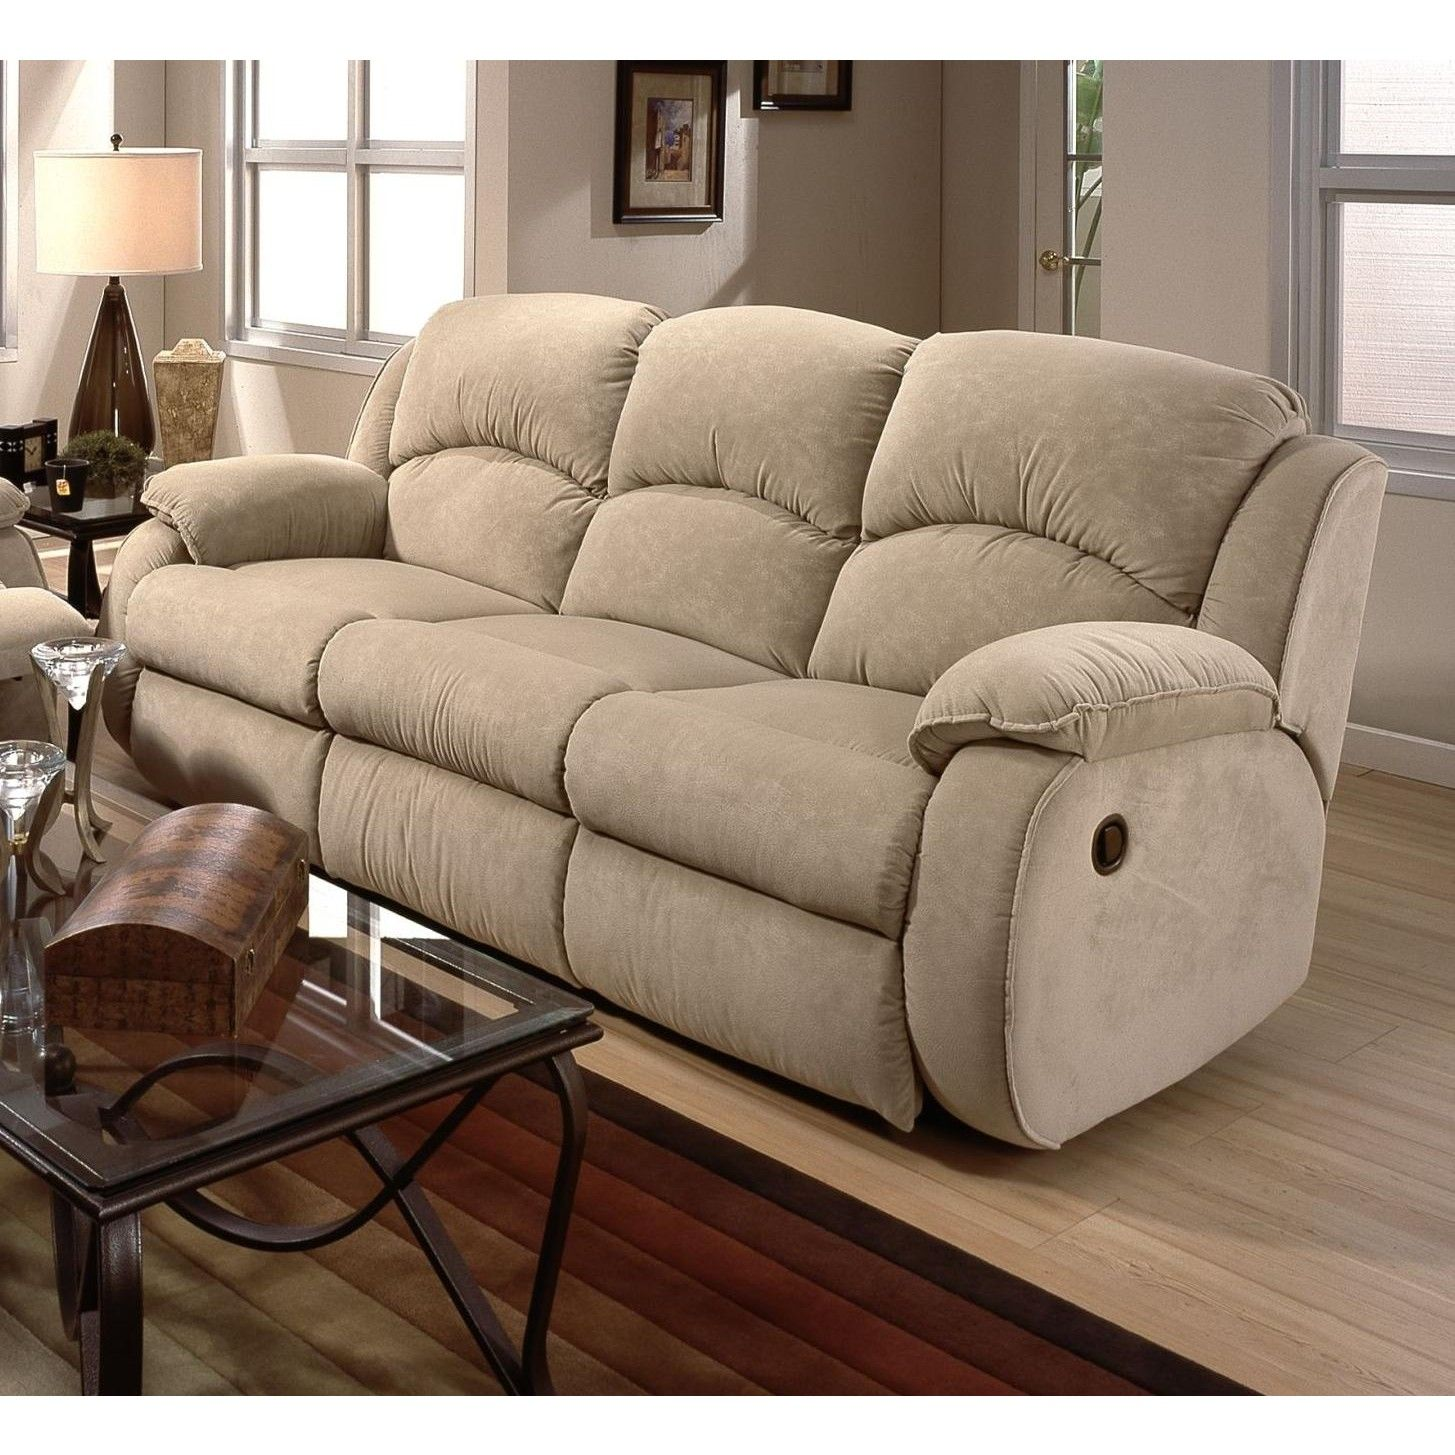 Southern Motion Cagney Double Reclining Sofa 705 31 By Southern